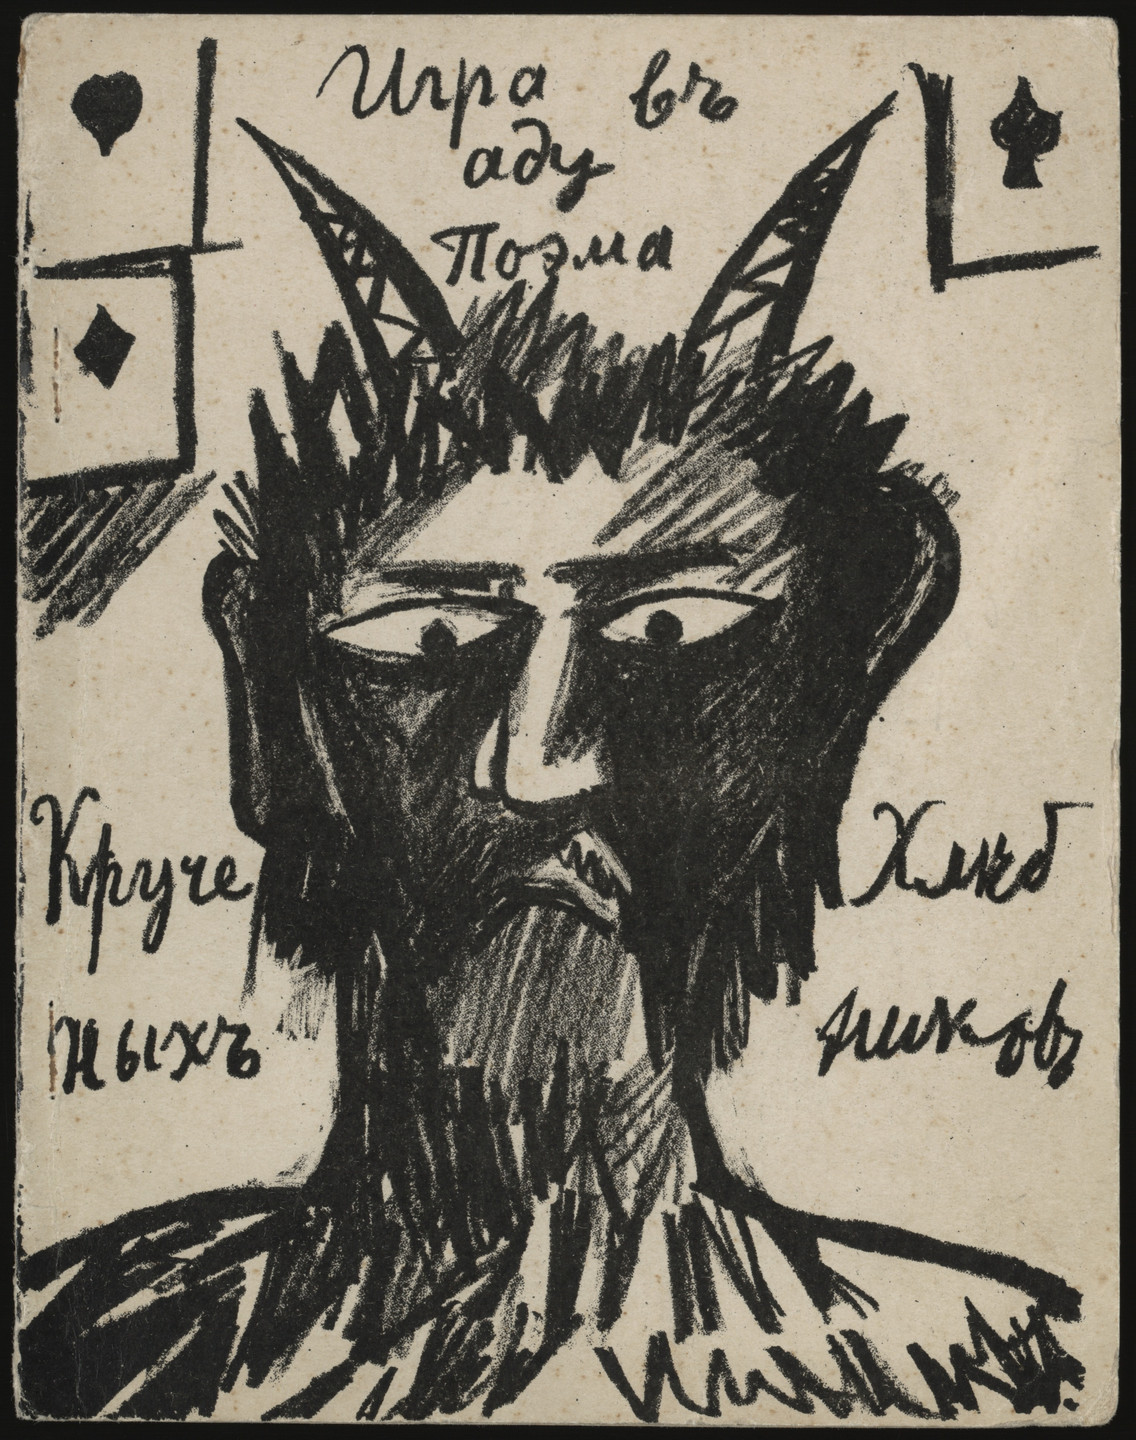 Natalia Goncharova. Cover from Igra v adu (A Game in Hell). 1912